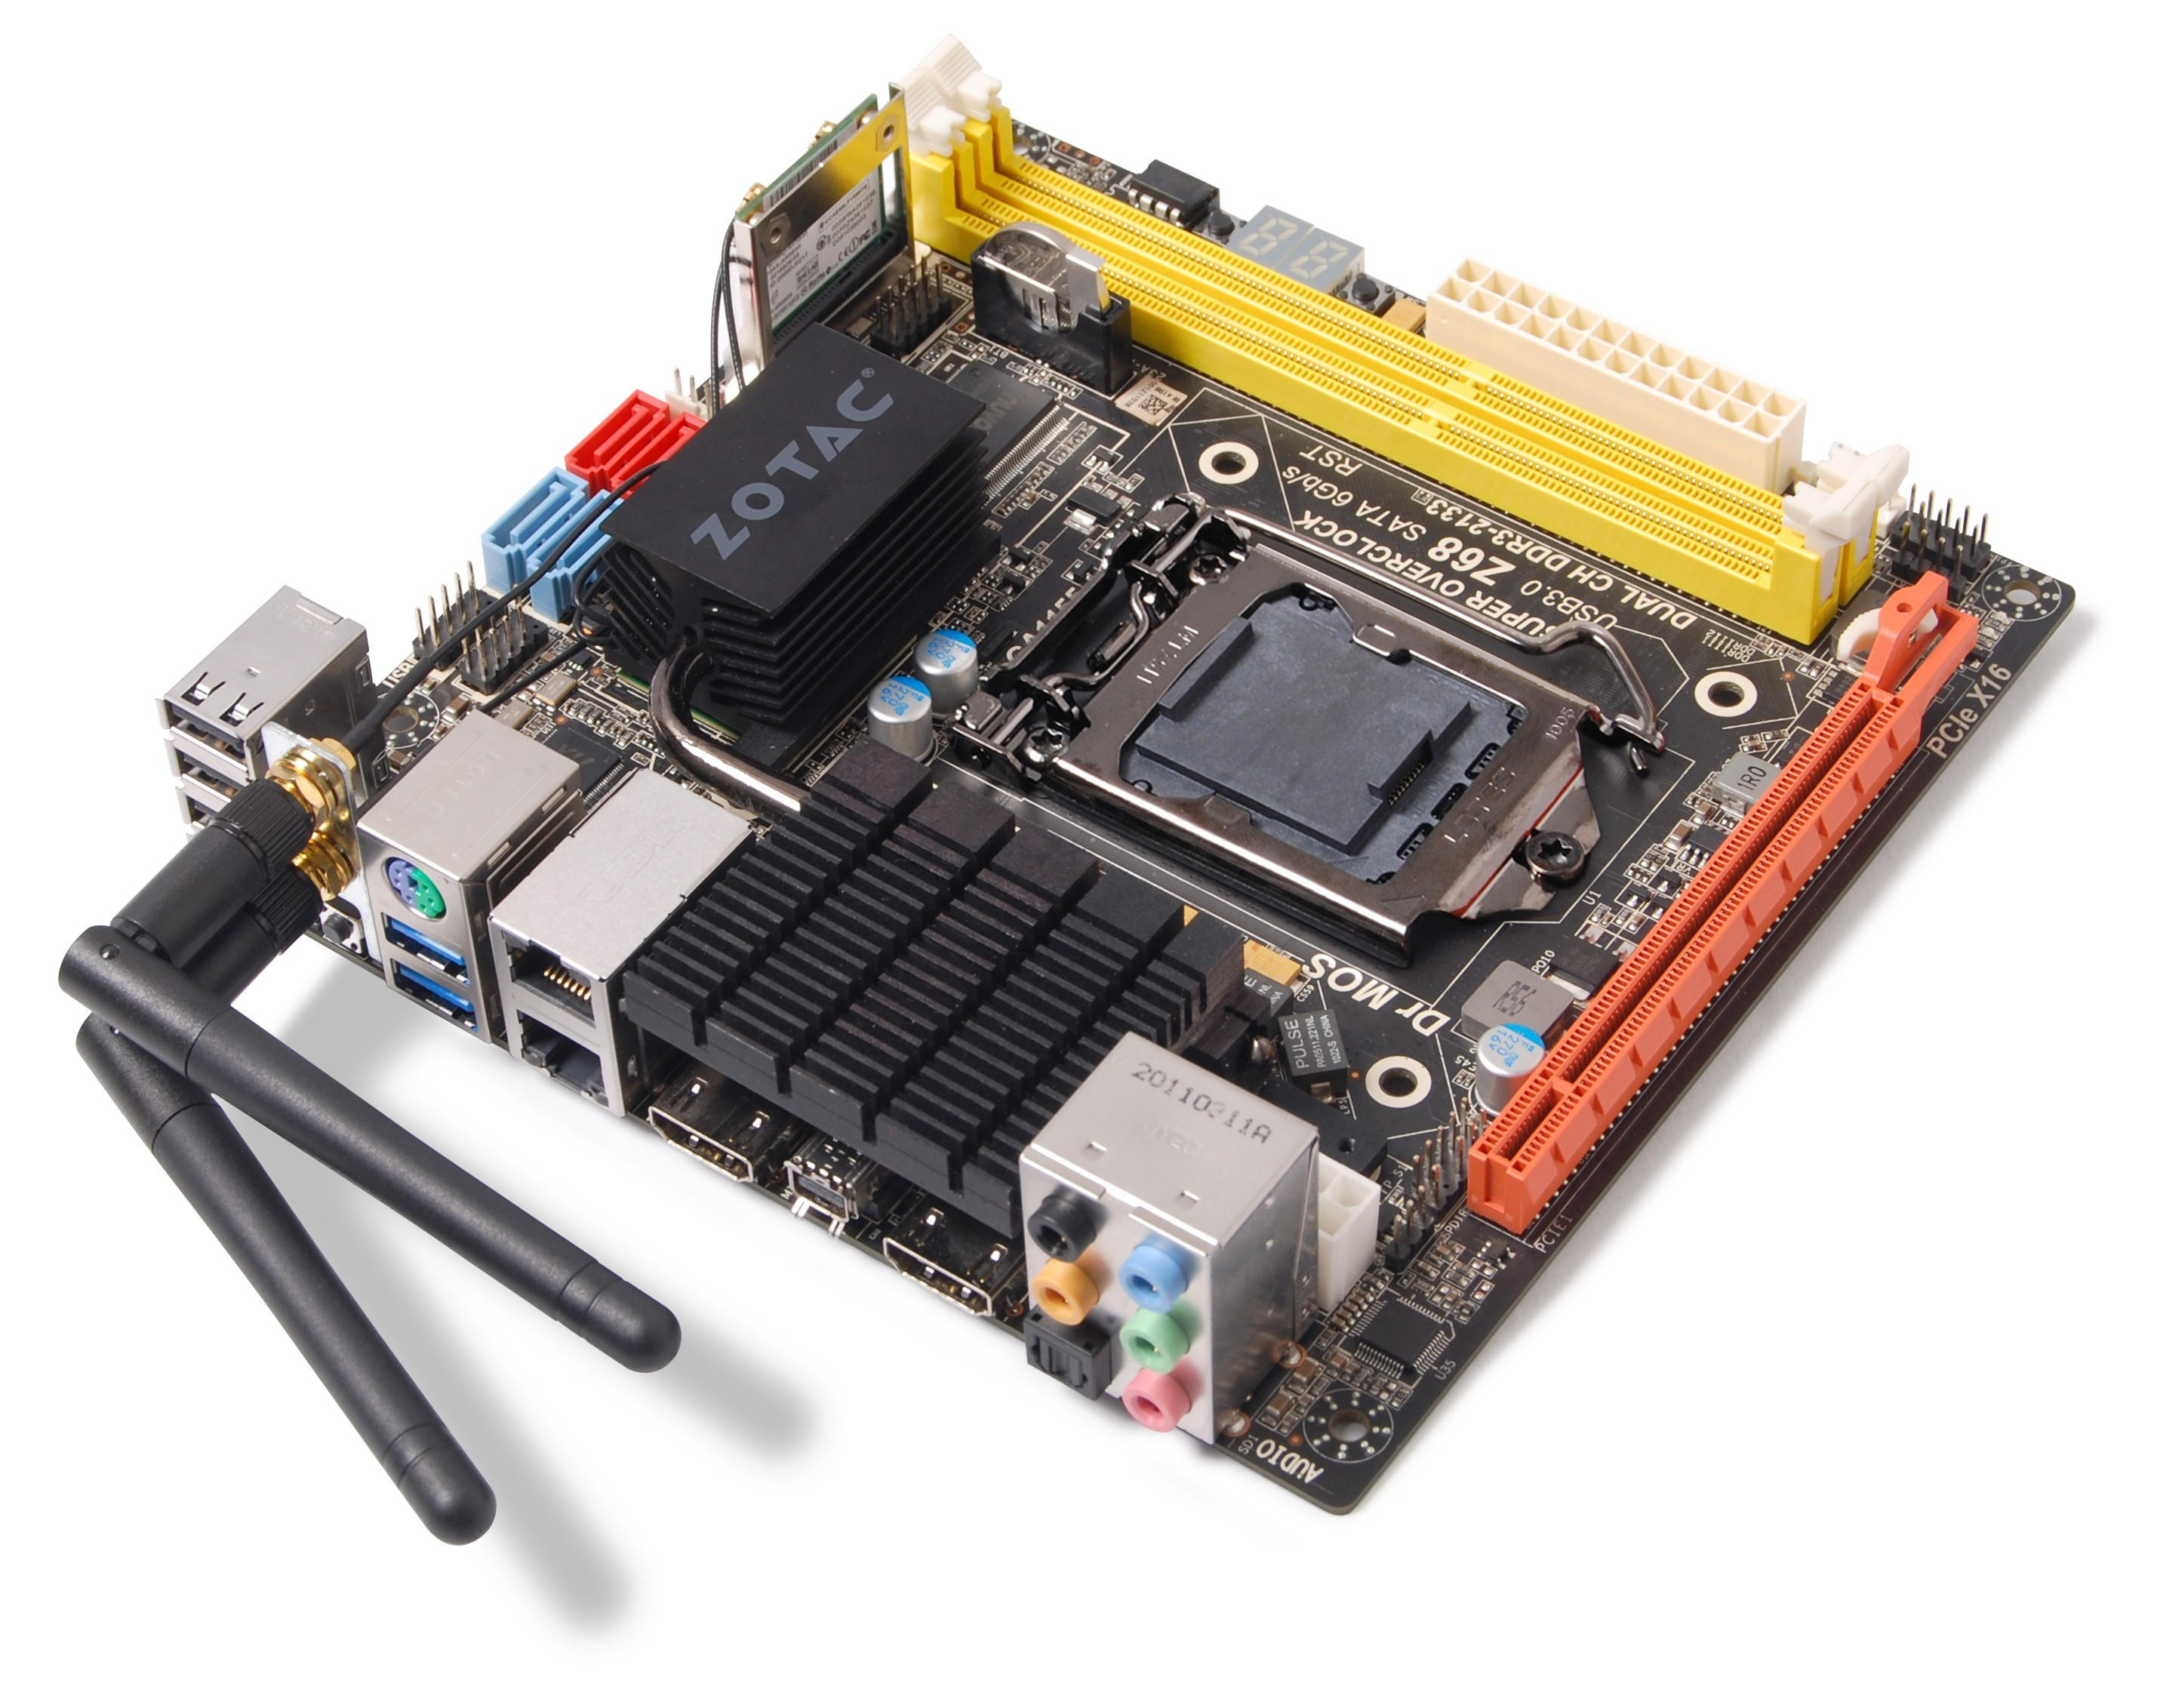 Zotac Z68ITX-A-E VIA USB 3.0 Driver Windows 7